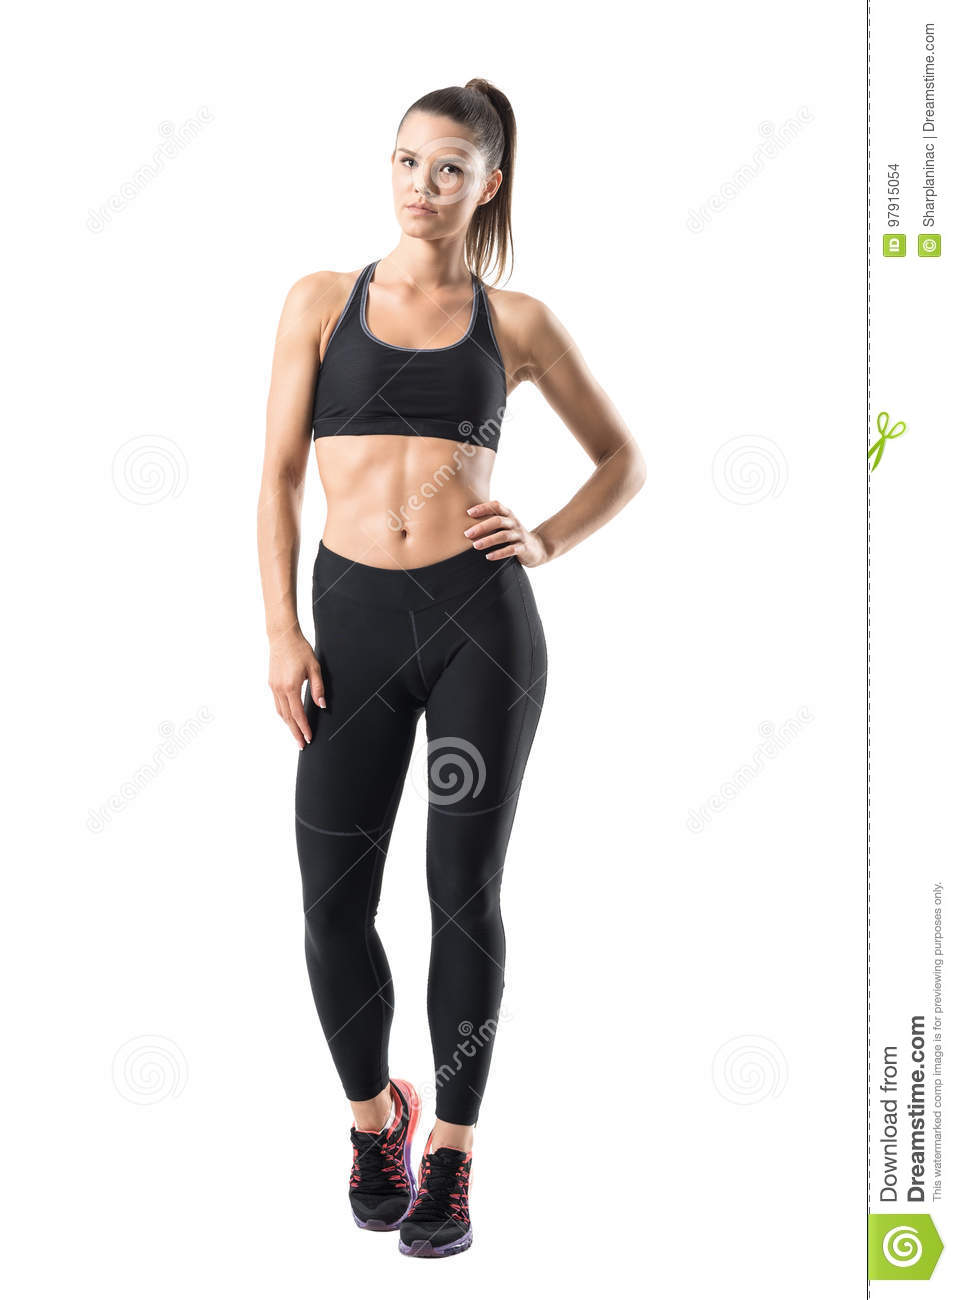 51dfbd9599f72 Attractive determined fit young woman in sports clothing posing with hand  on hip. Full body length portrait isolated on white studio background